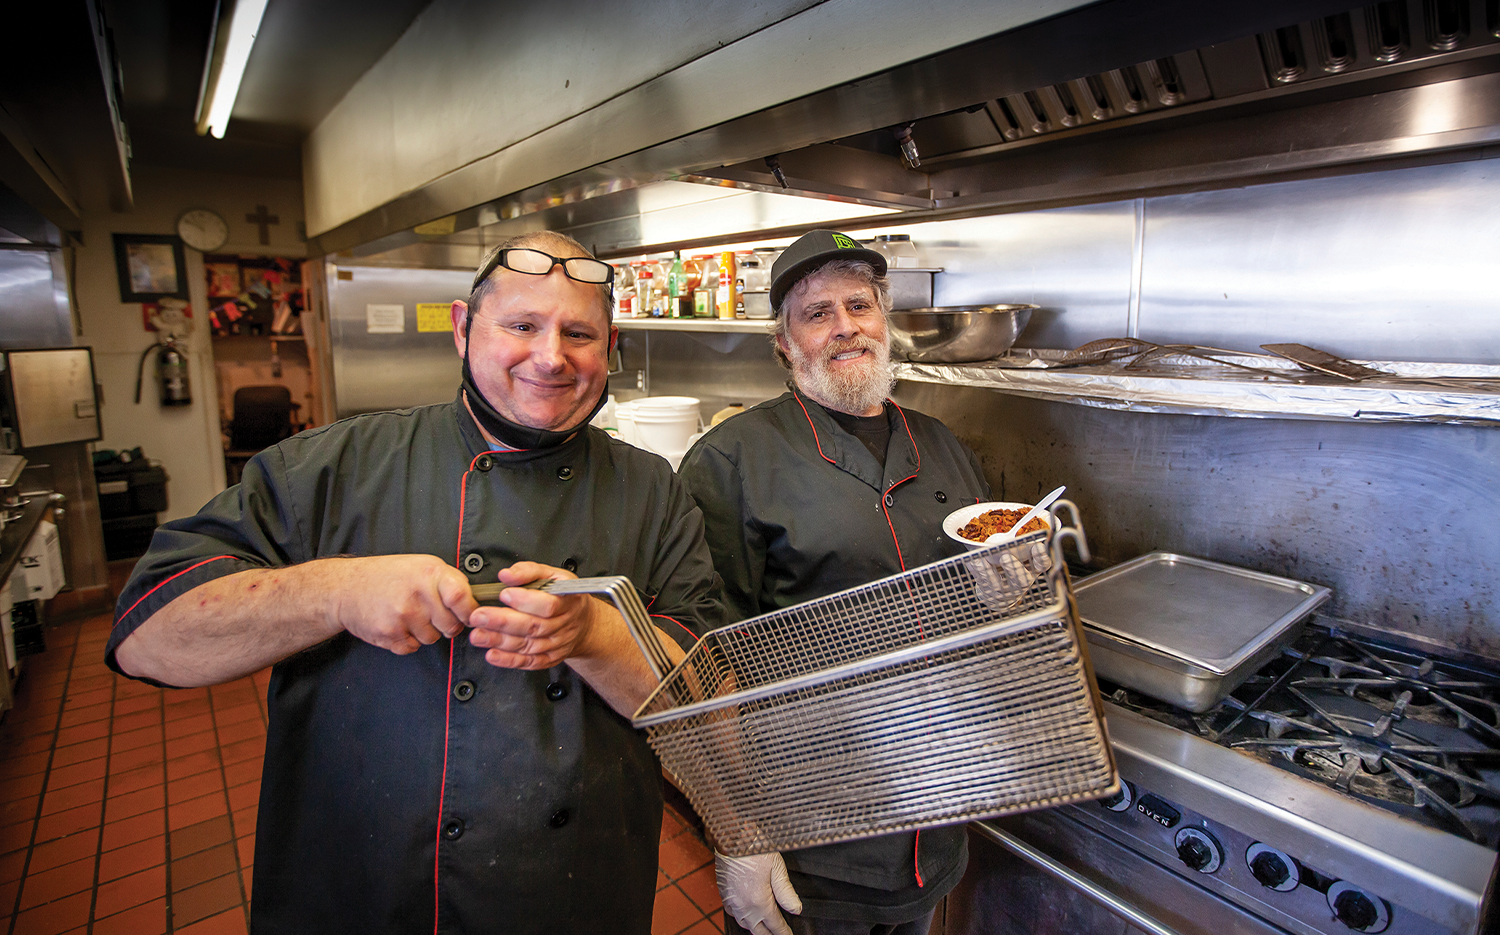 Anthony Ebbe and Tommy Hendricks at work in the kitchen